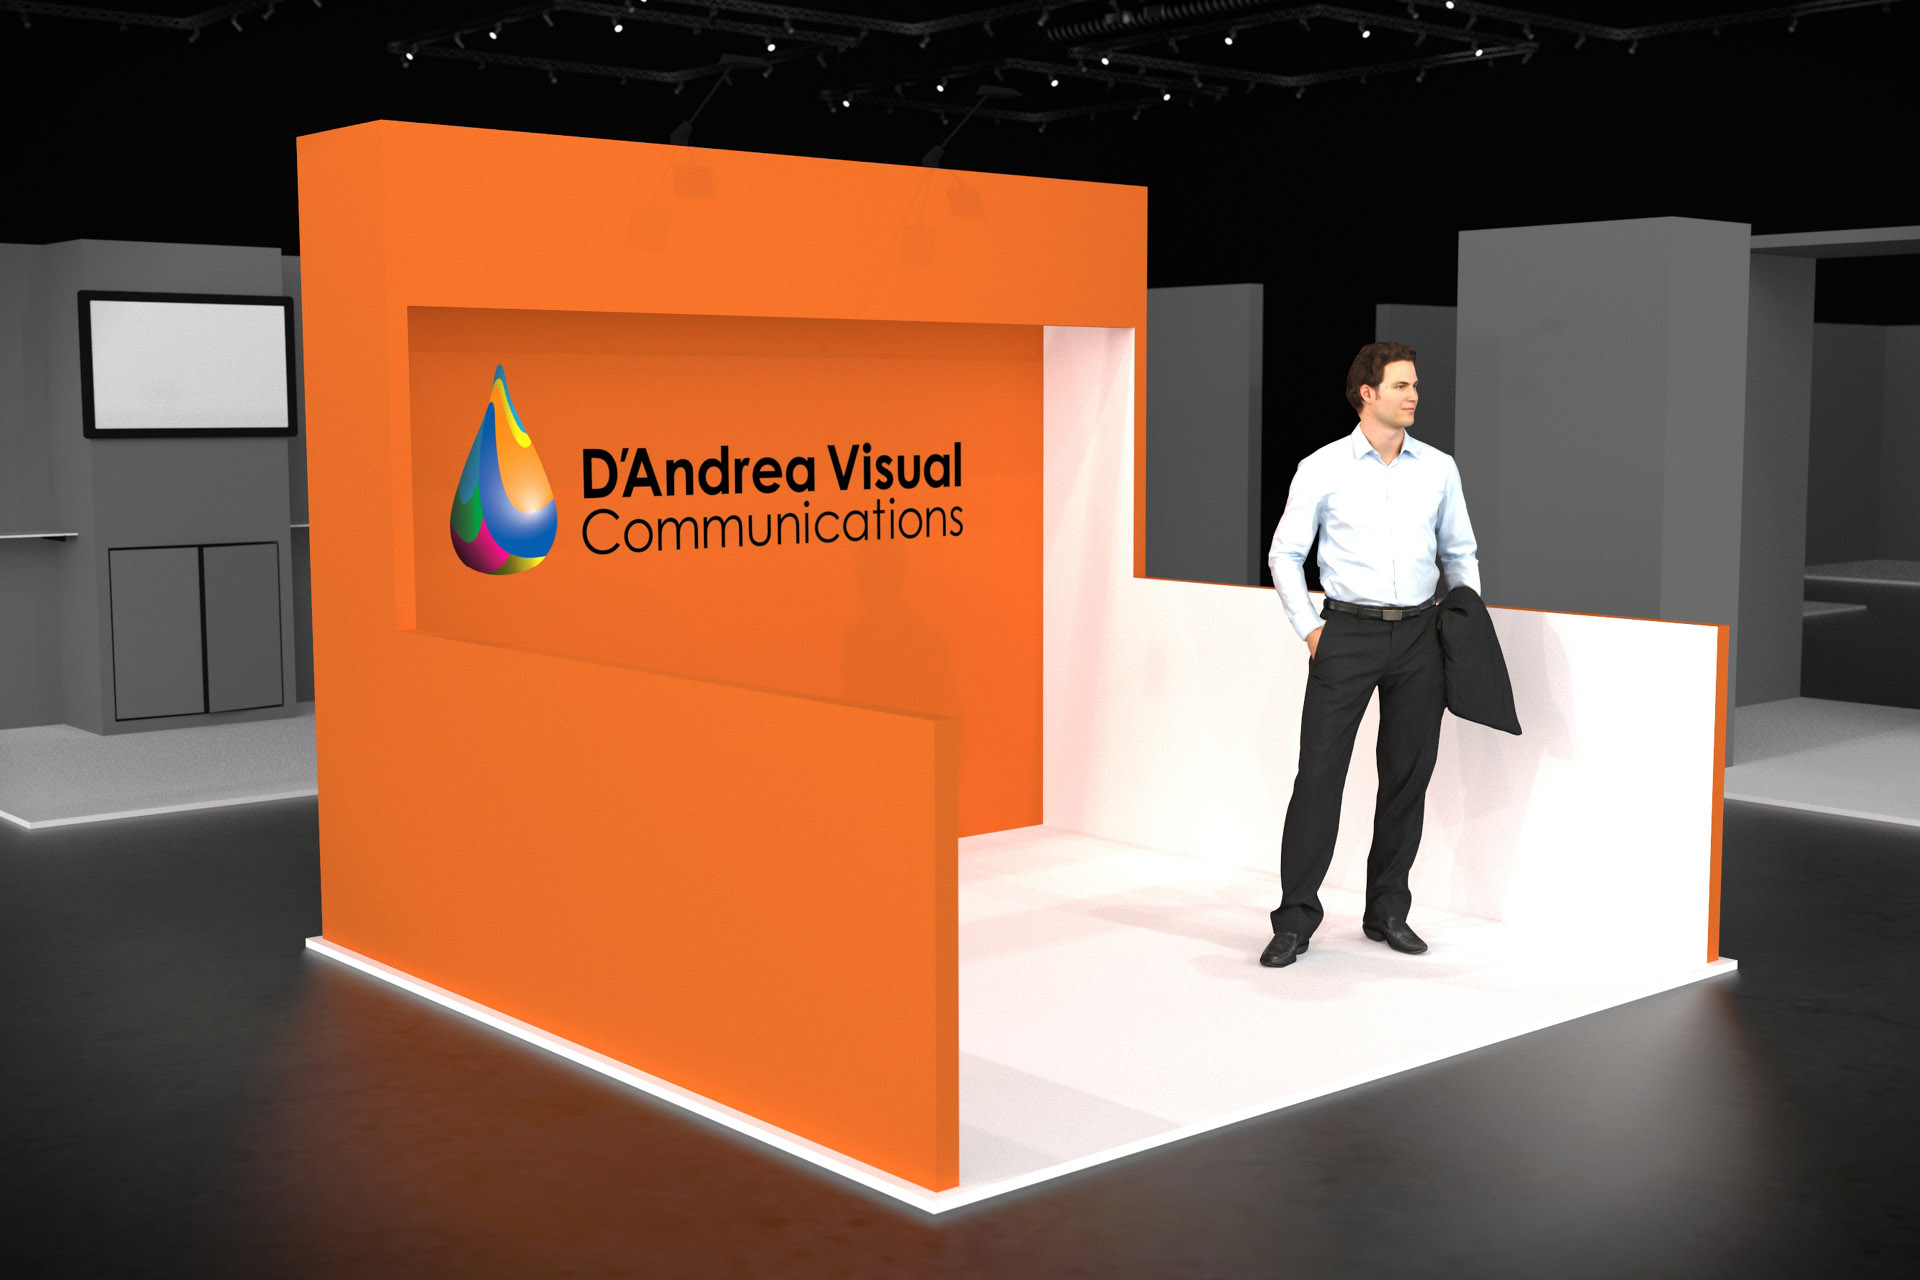 Trade Show Booth Graphic Design : Choose from our modern trade show booth options